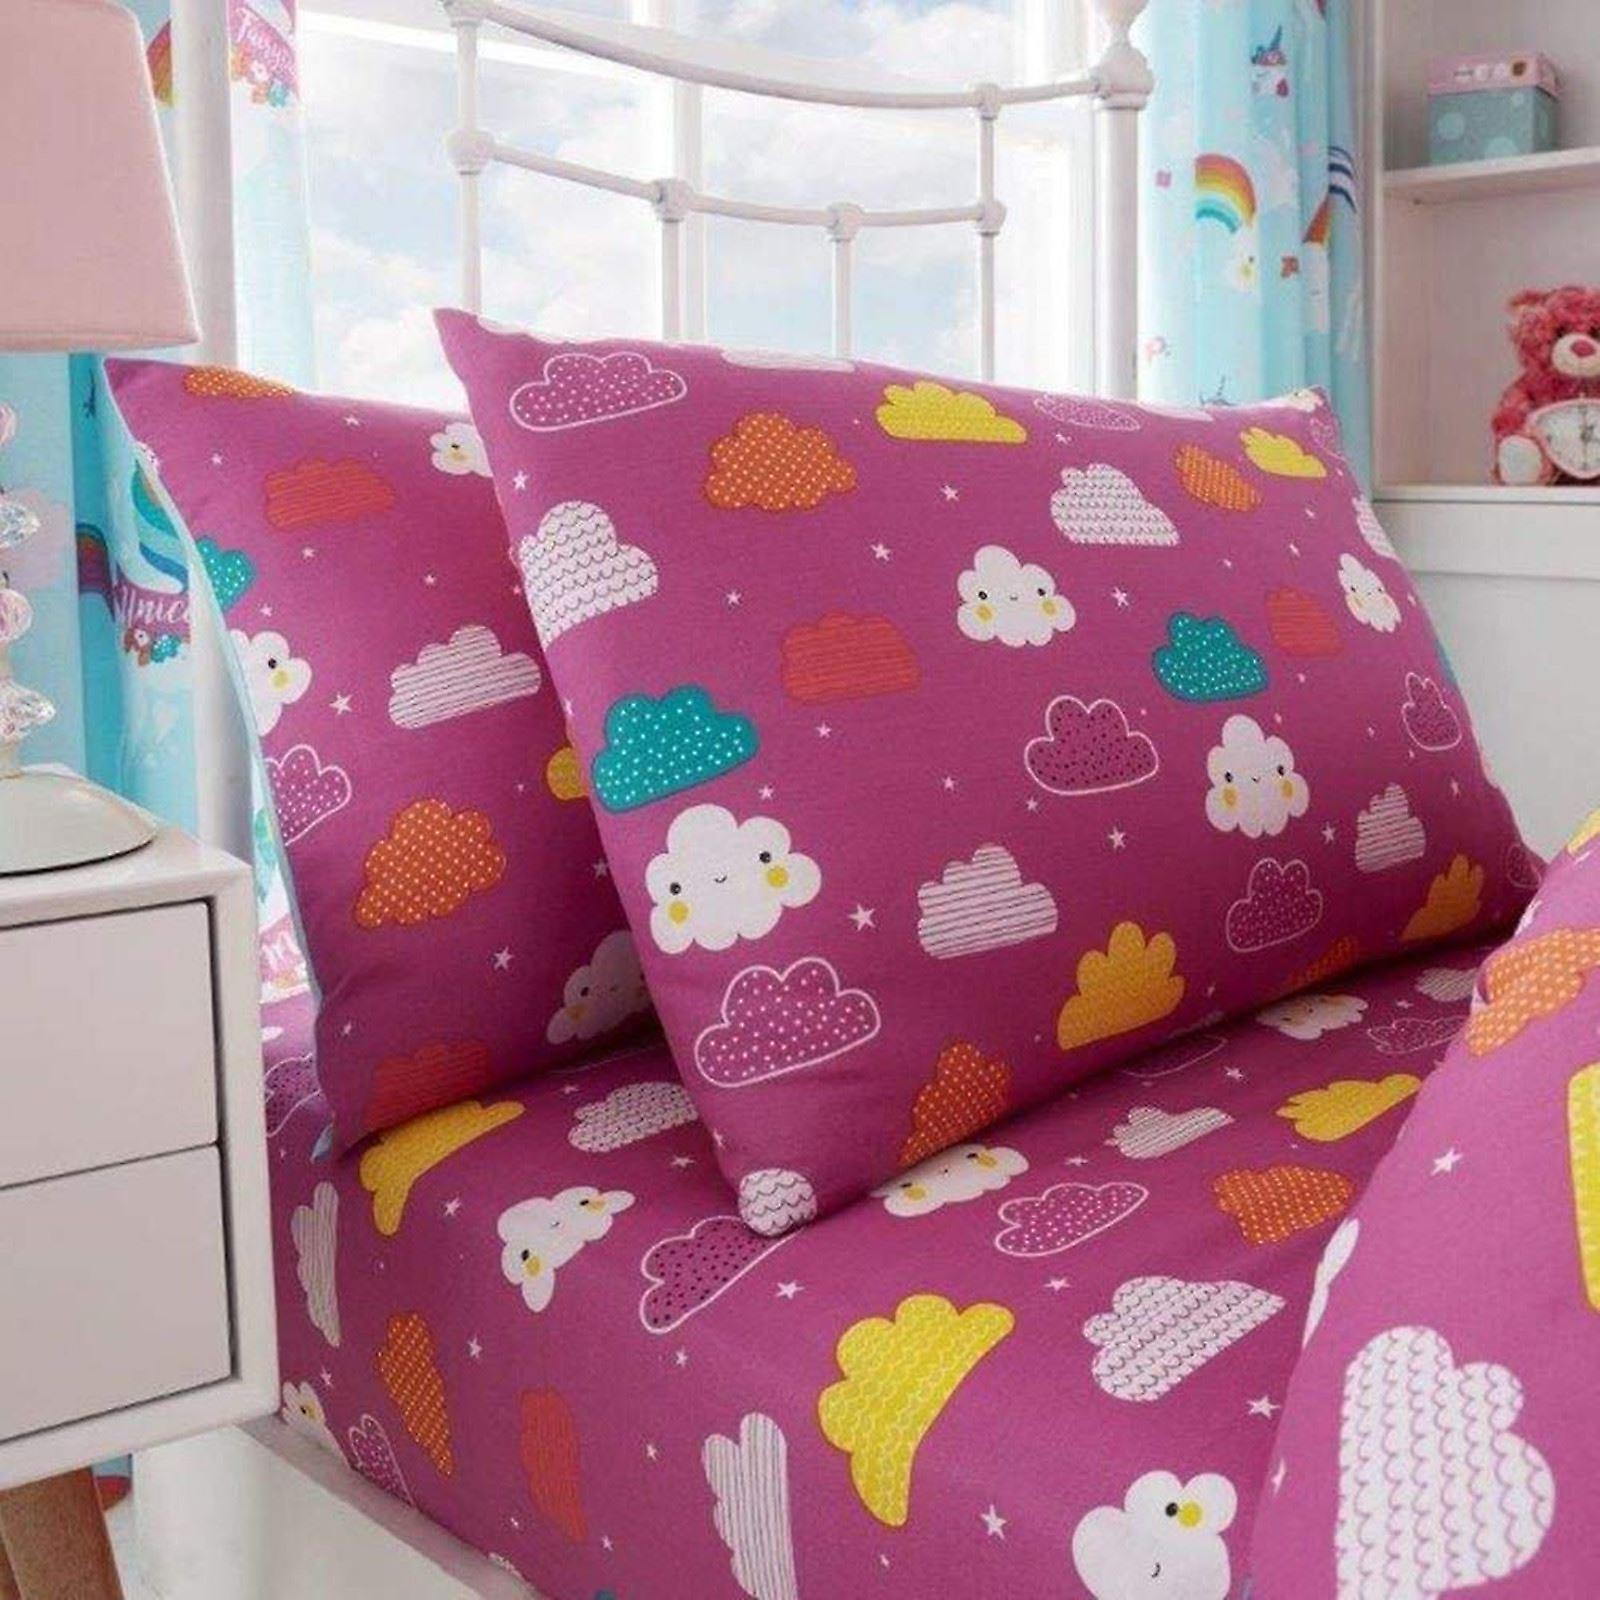 Unicorn Fairy Tale Single Fitted Sheet And Pillowcase Set